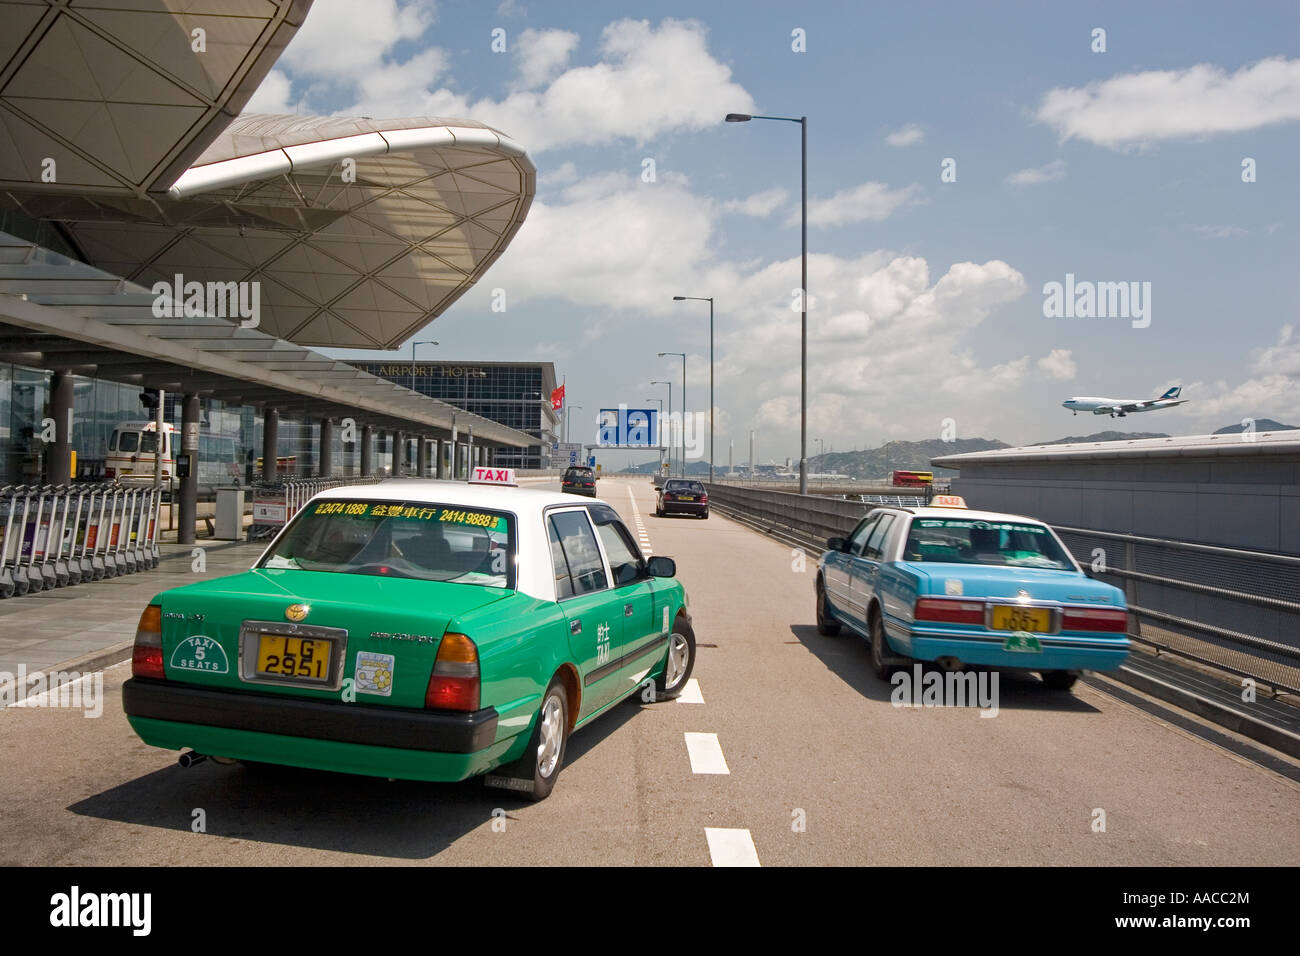 Taxis and plane Chek Lap Kok airport Hong Kong - Stock Image